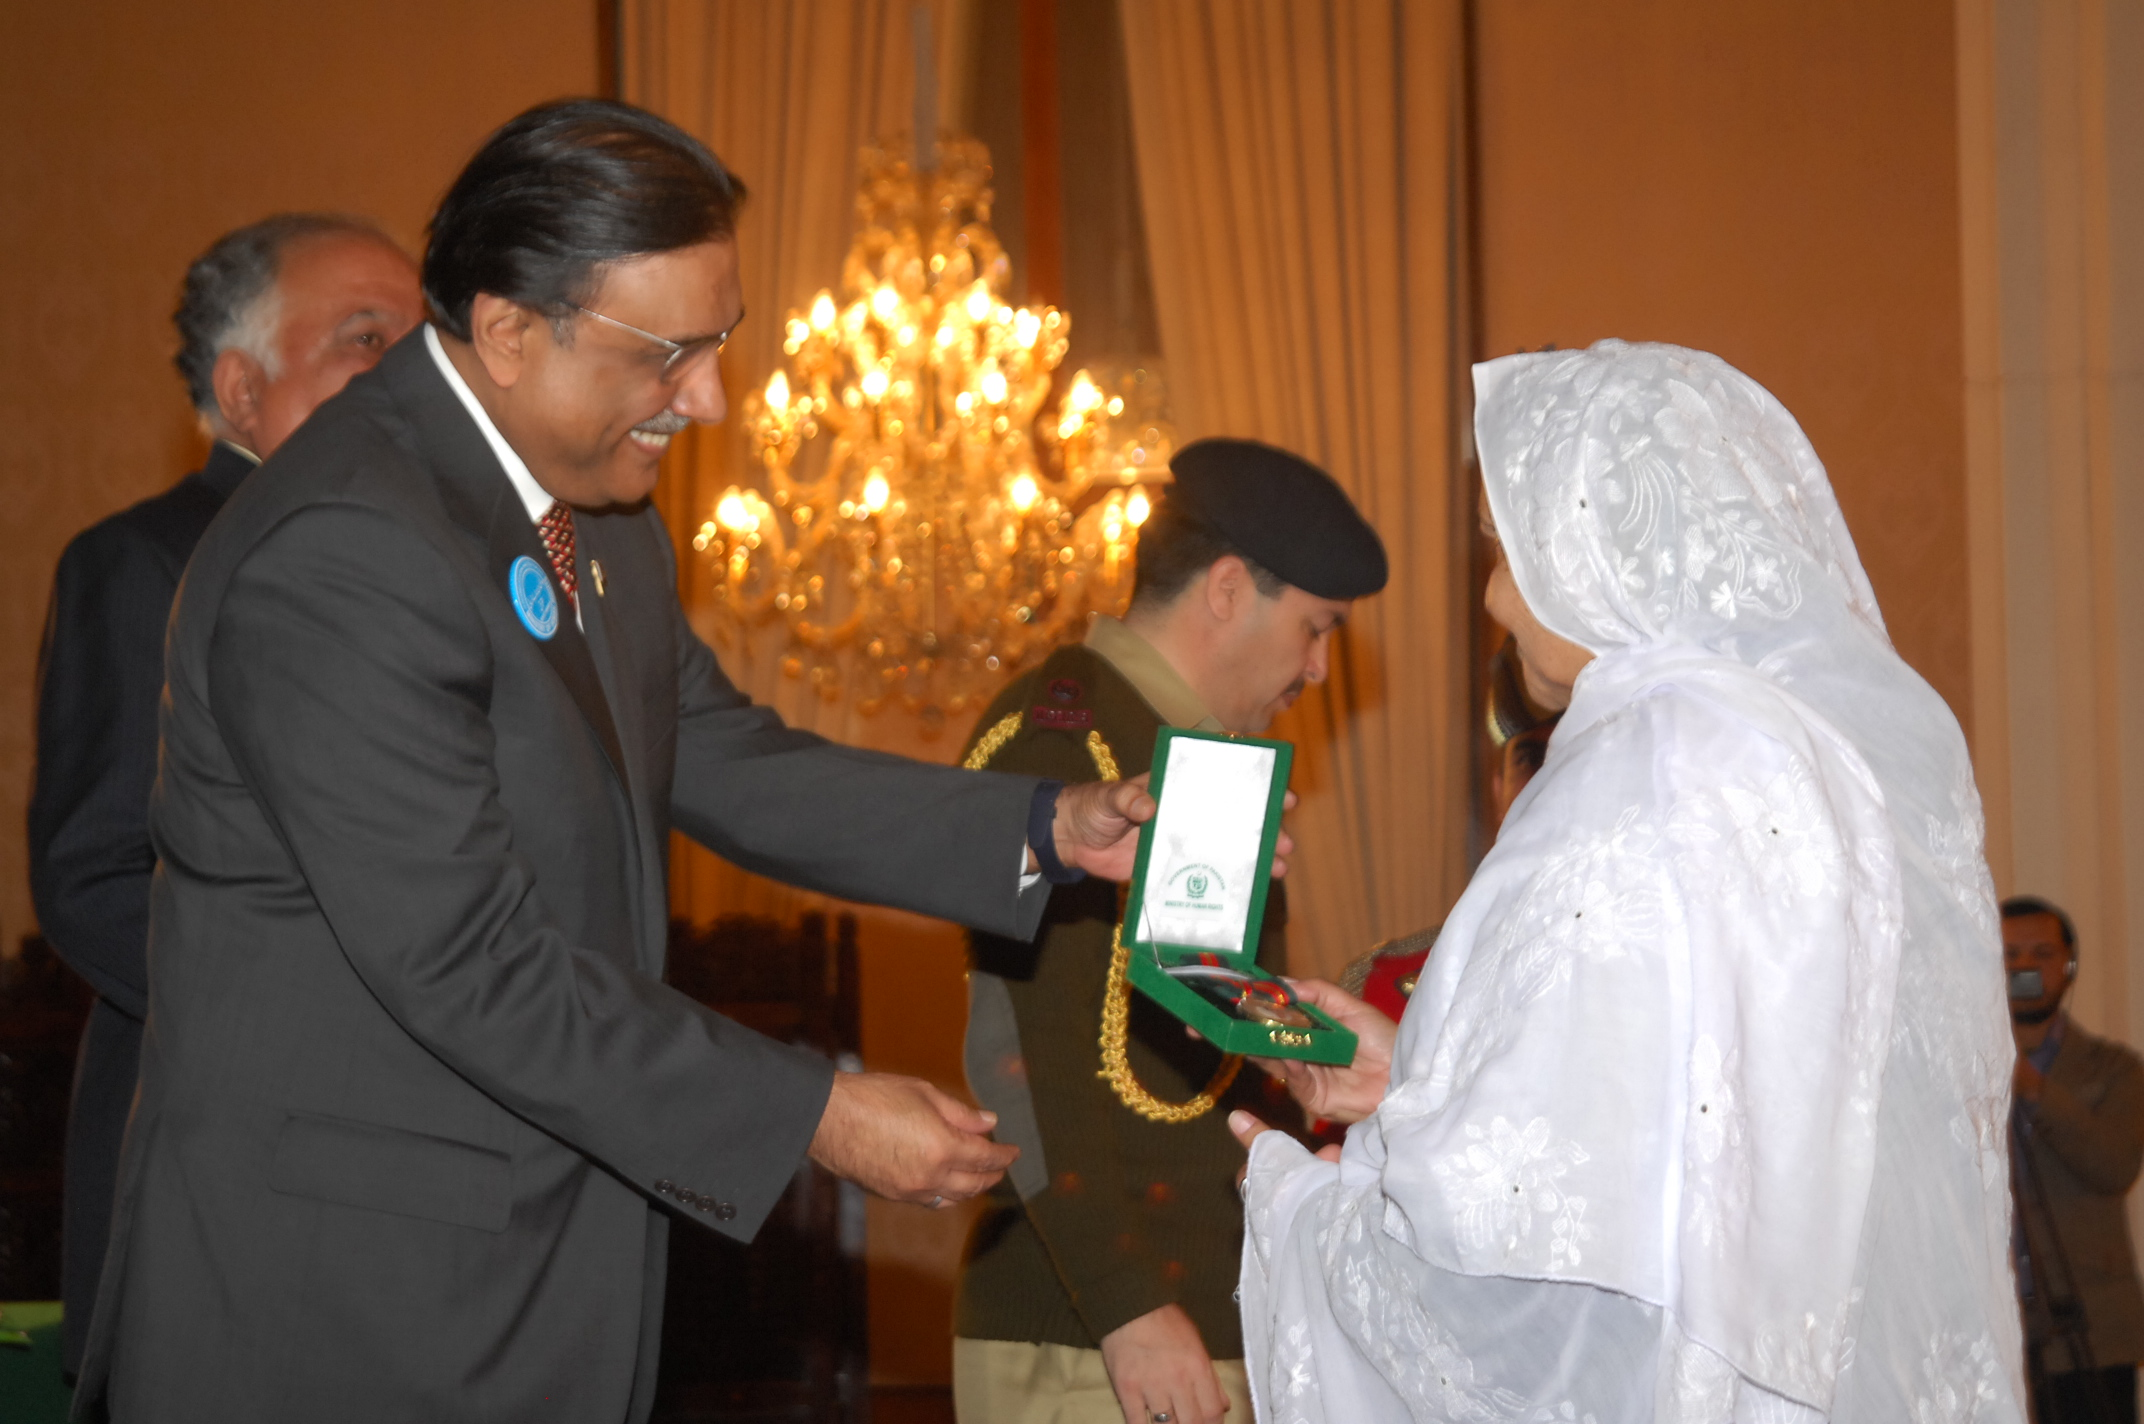 Maryam Bibi receiving Human Rights Award from President of Pakistan